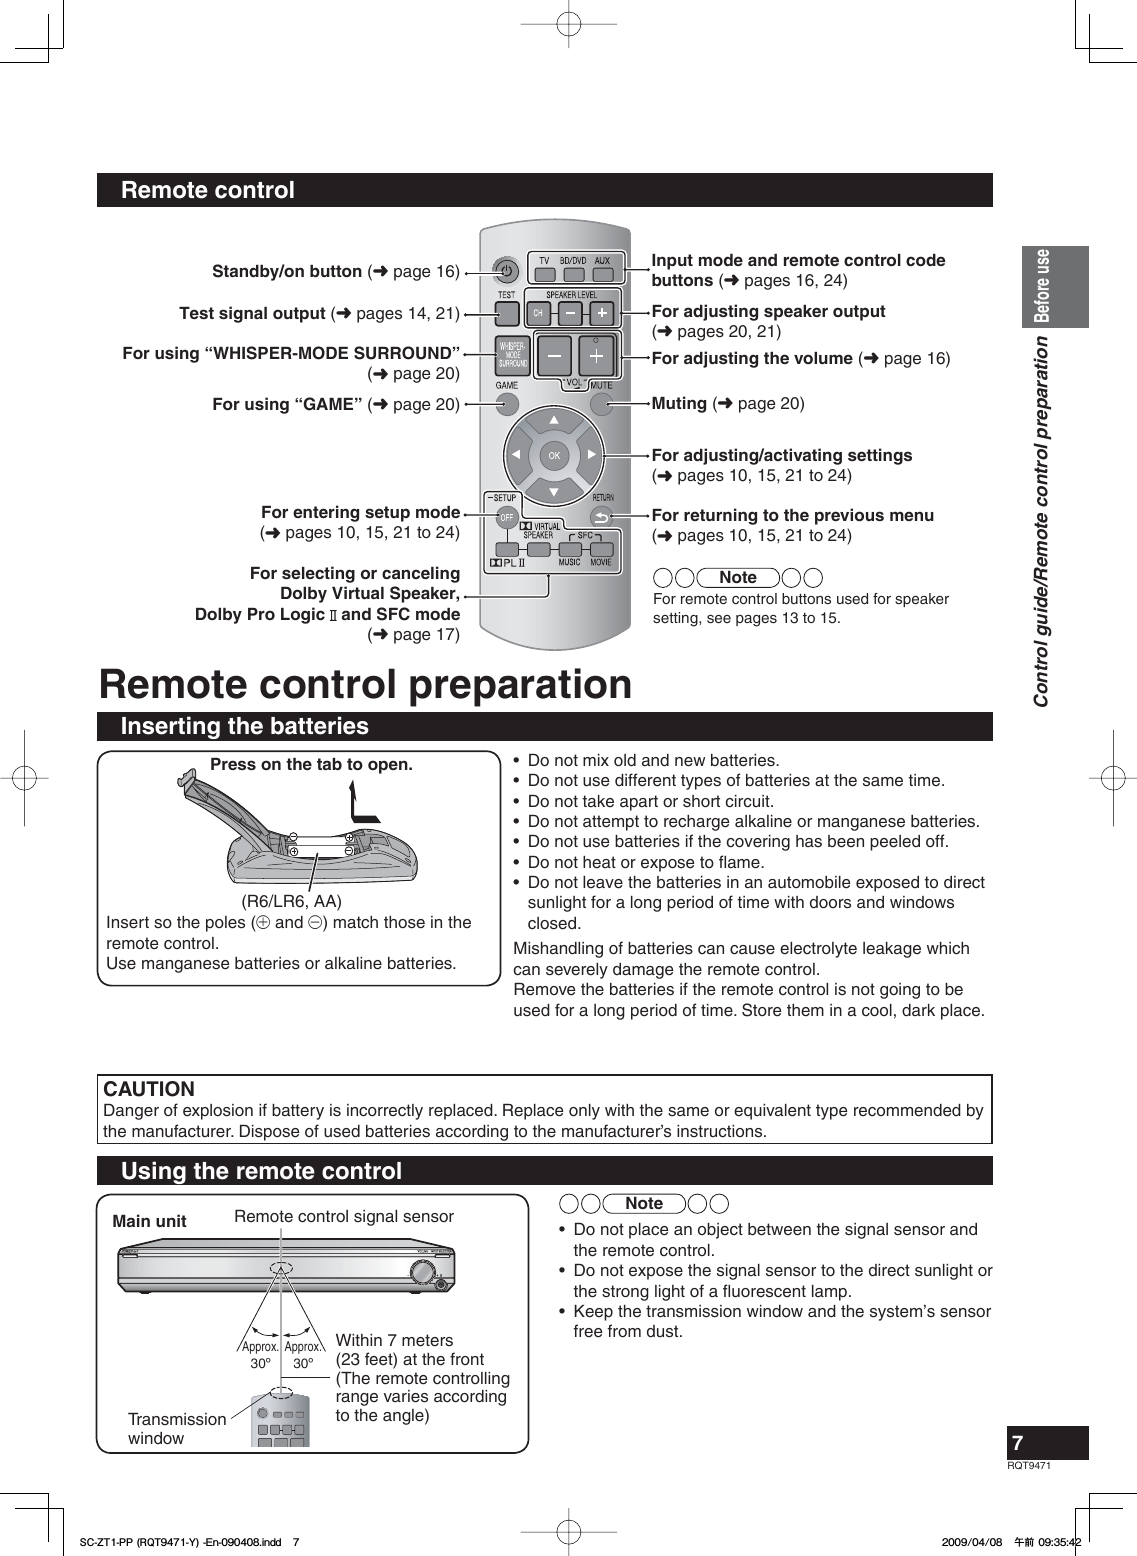 panasonic of north america su zt1 home theater audio system user manual rh usermanual wiki North American Battery Company American Manufacturer of Batteries Logo